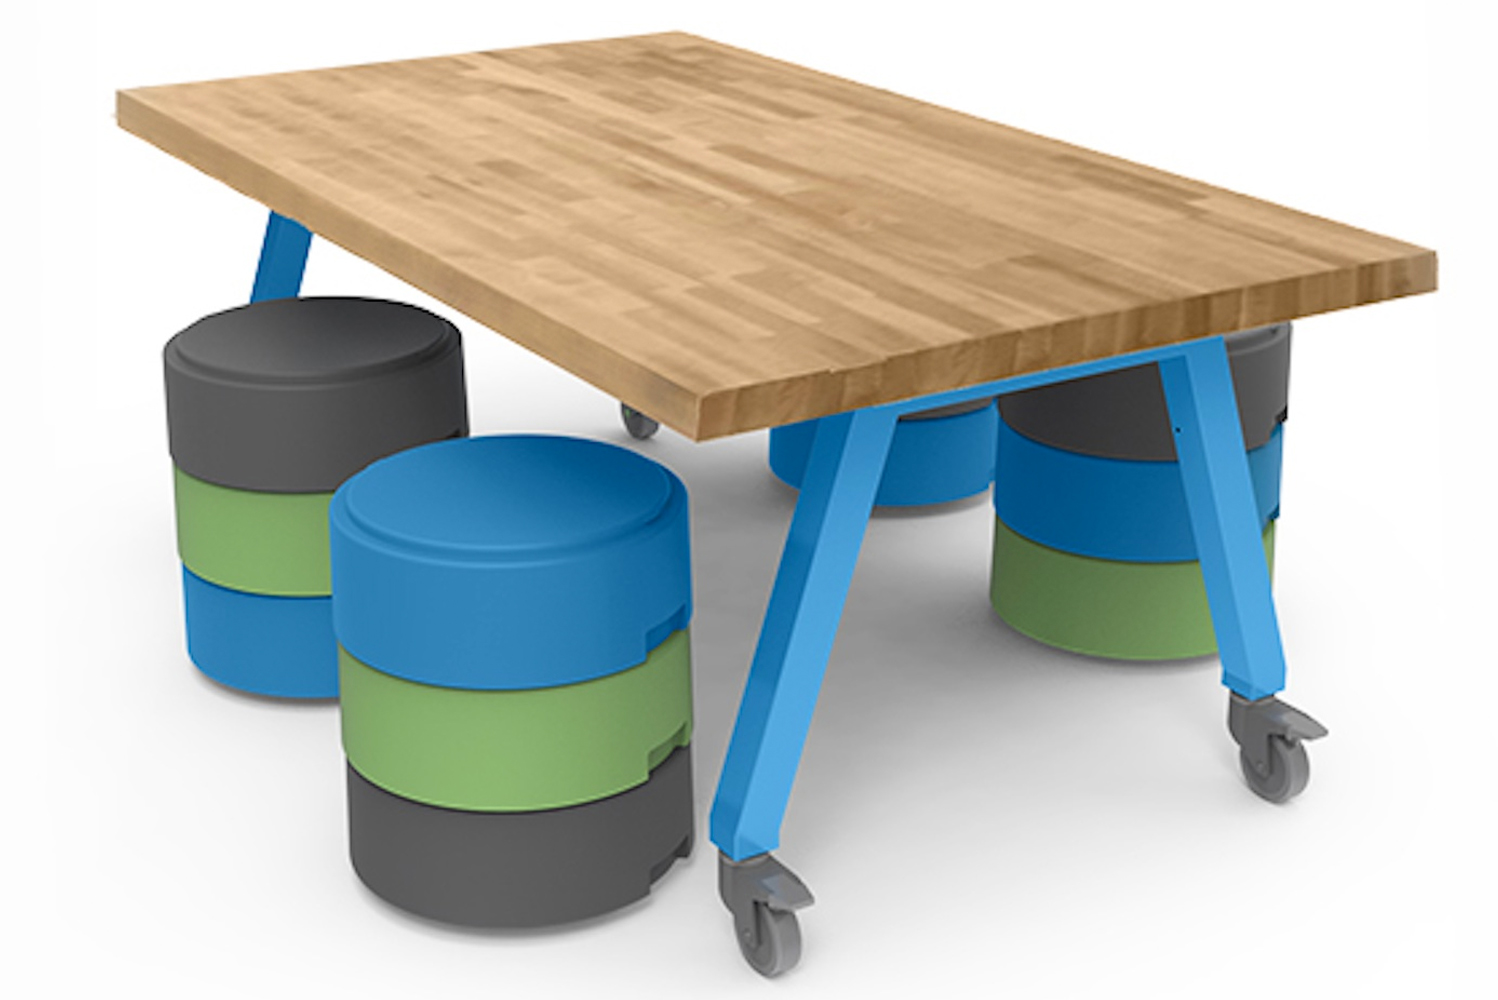 Smith System launched the Planner Studio table series.